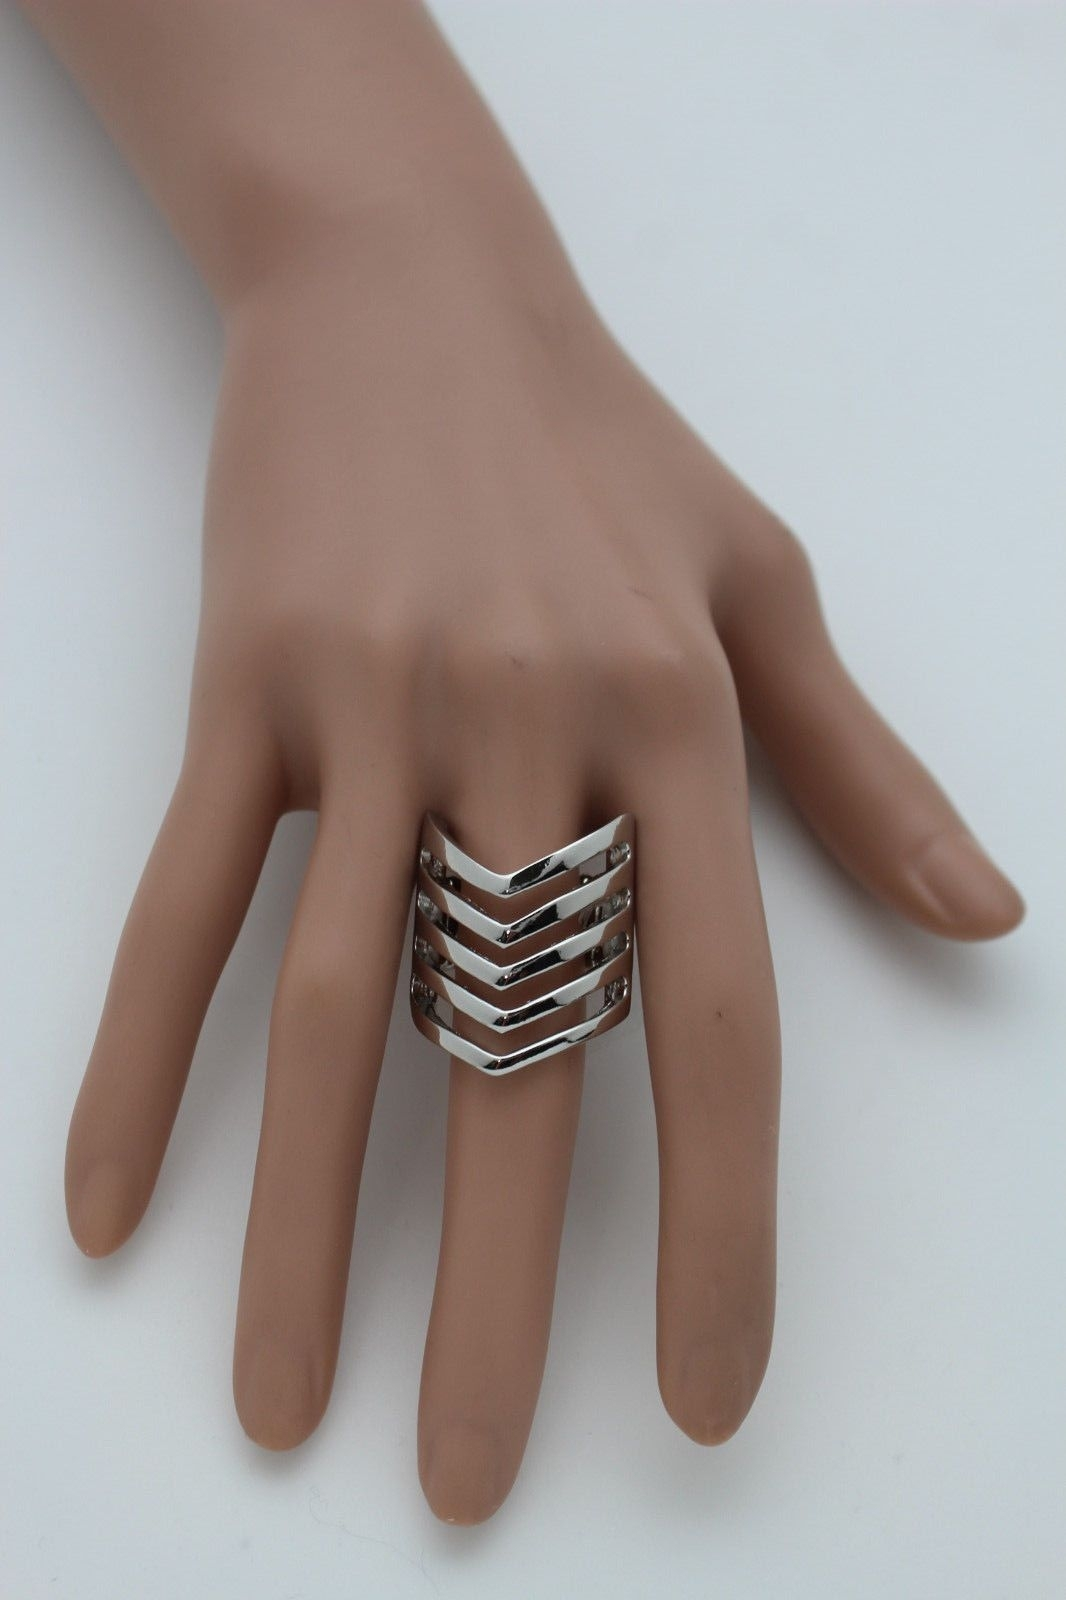 New Women Ring Fashion Jewelry Silver Metal Chevron Stripes Finger With Regard To Newest Chevron Finger Rings (View 12 of 15)